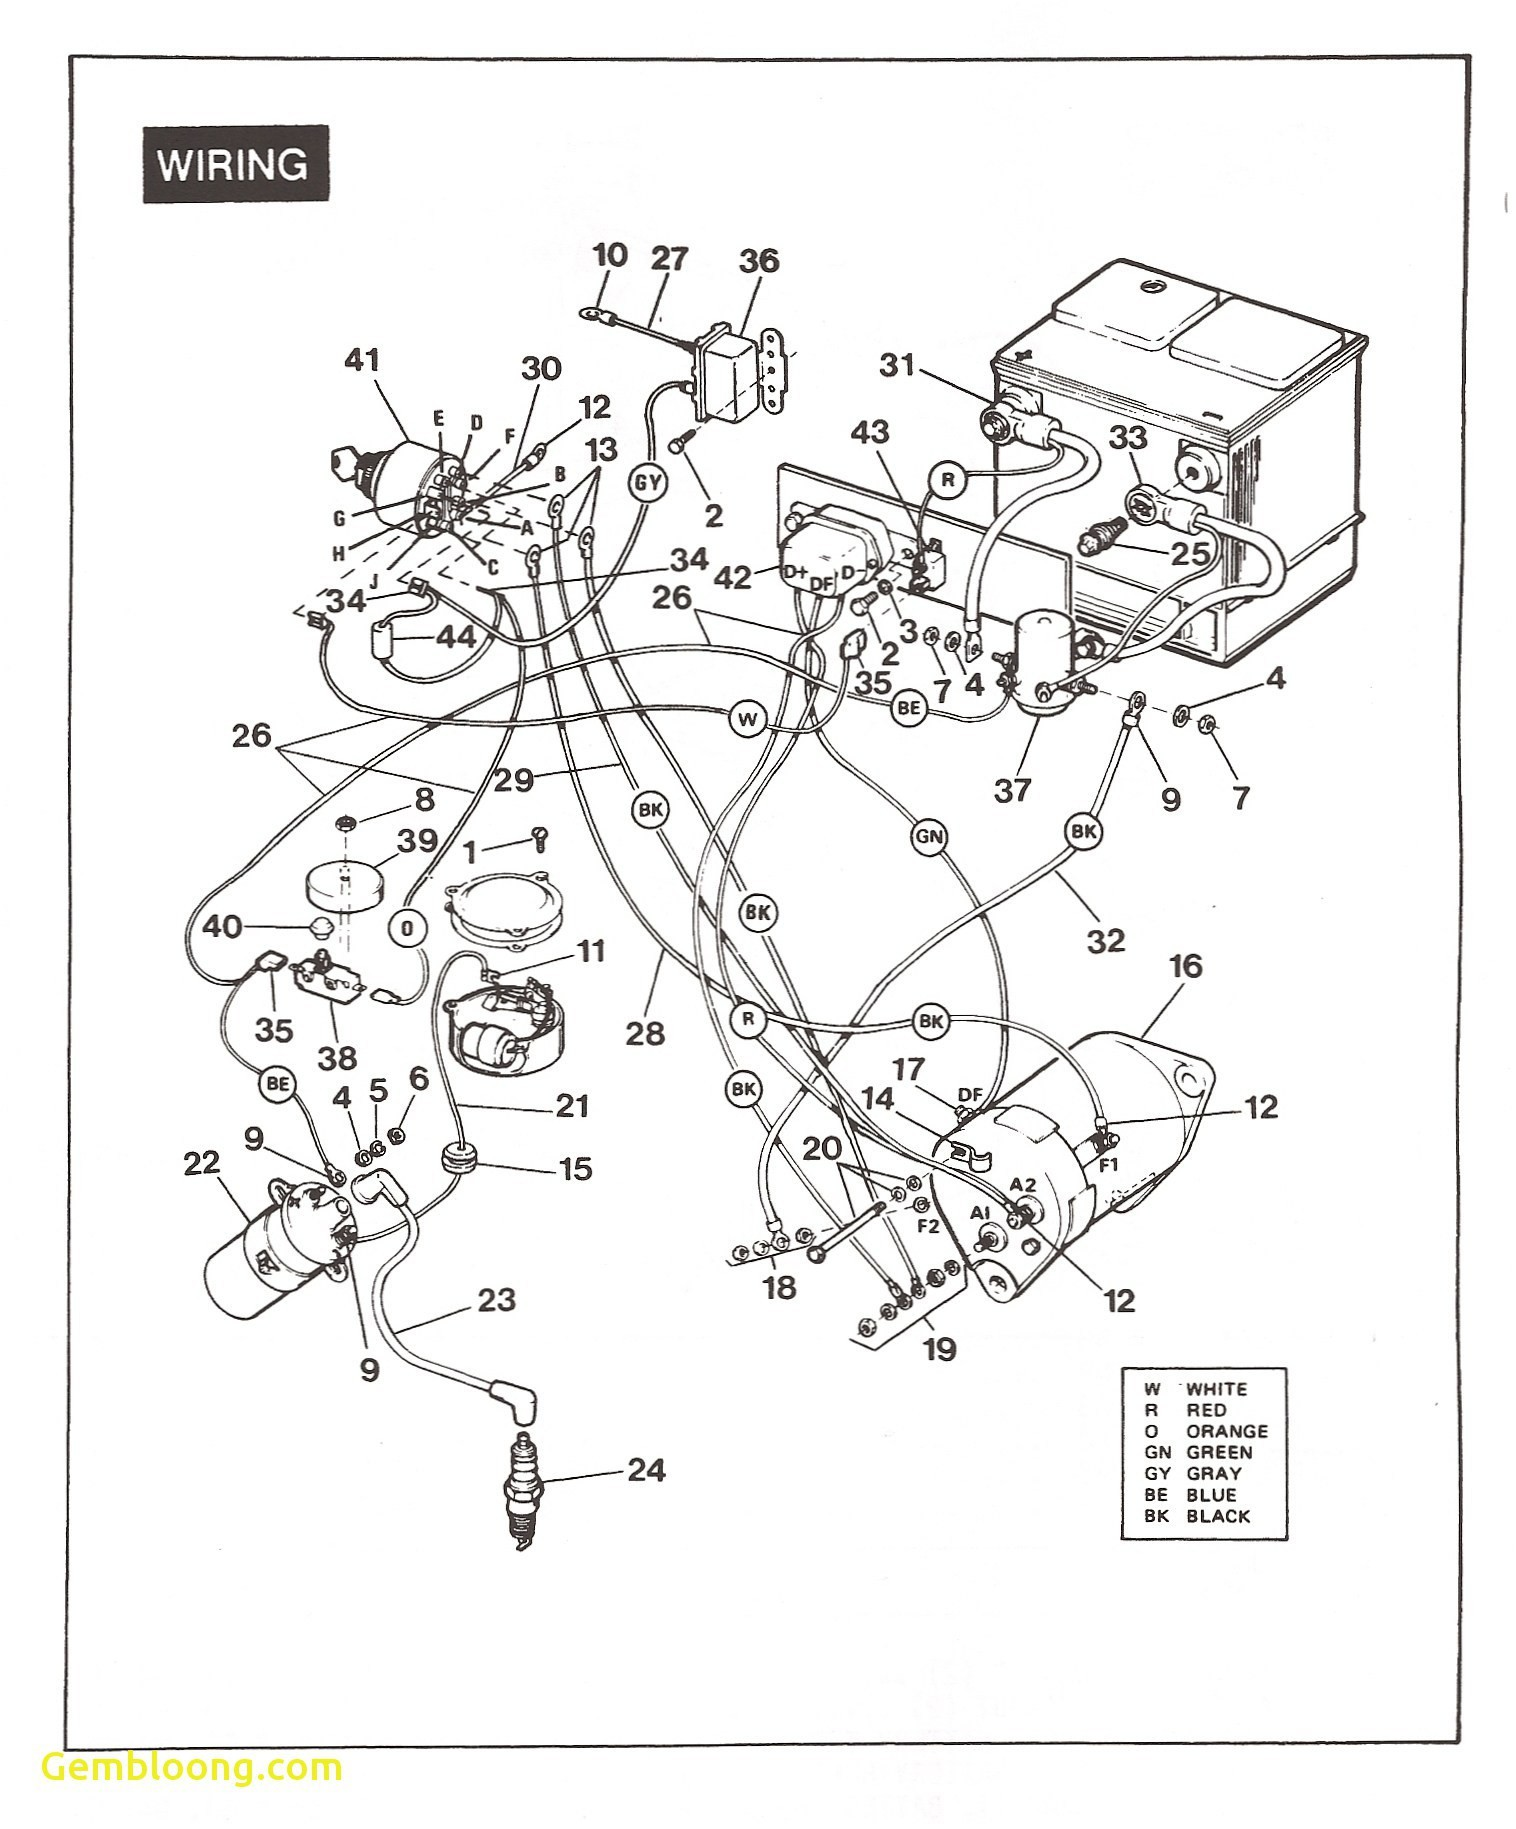 hight resolution of  1999 club car wiring diagram columbia par car 48v wiring diagram